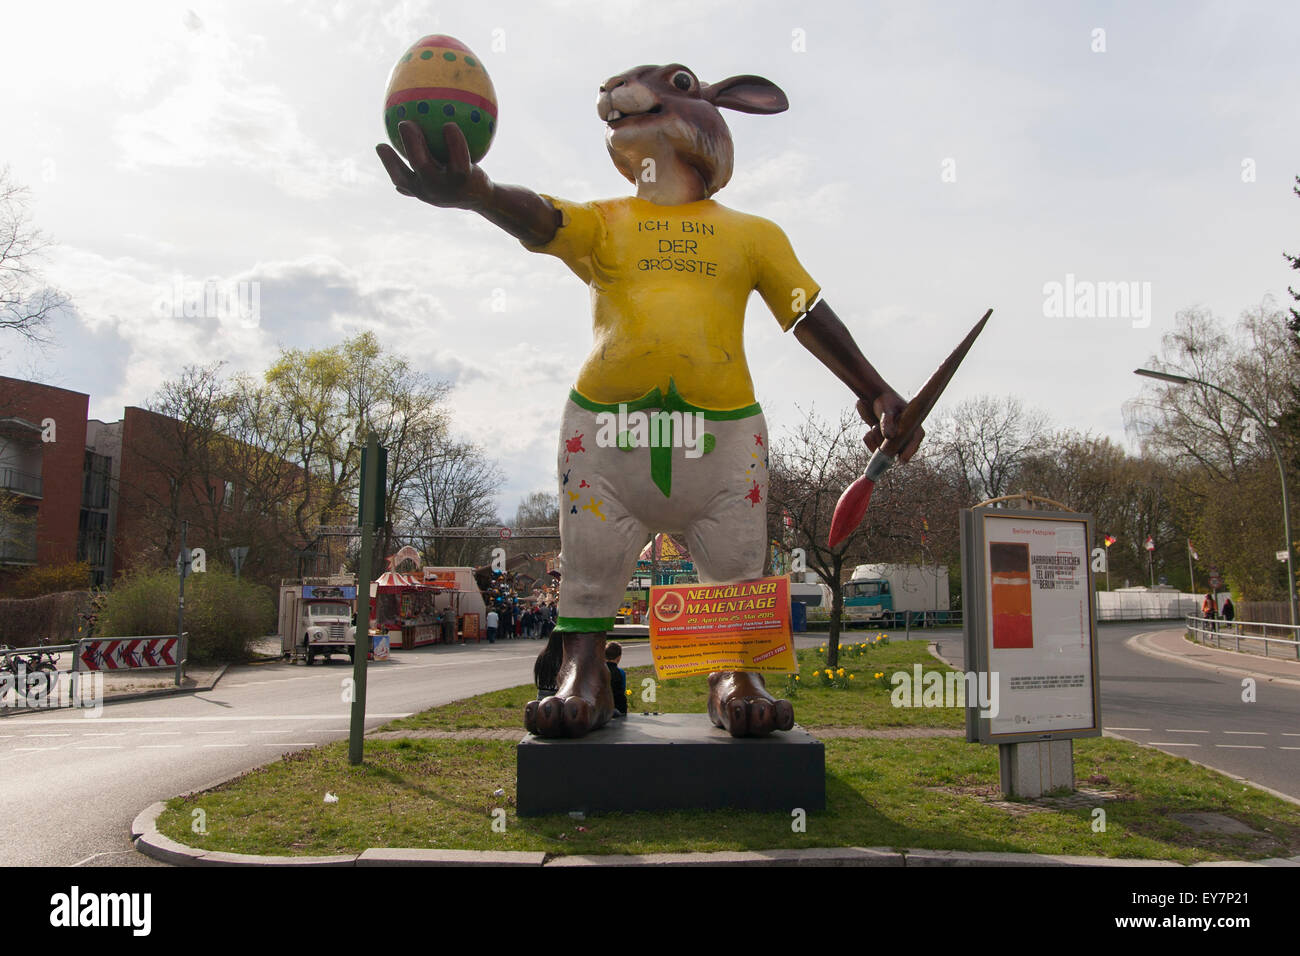 Giant Easter bunny Berlin Germany - Stock Image